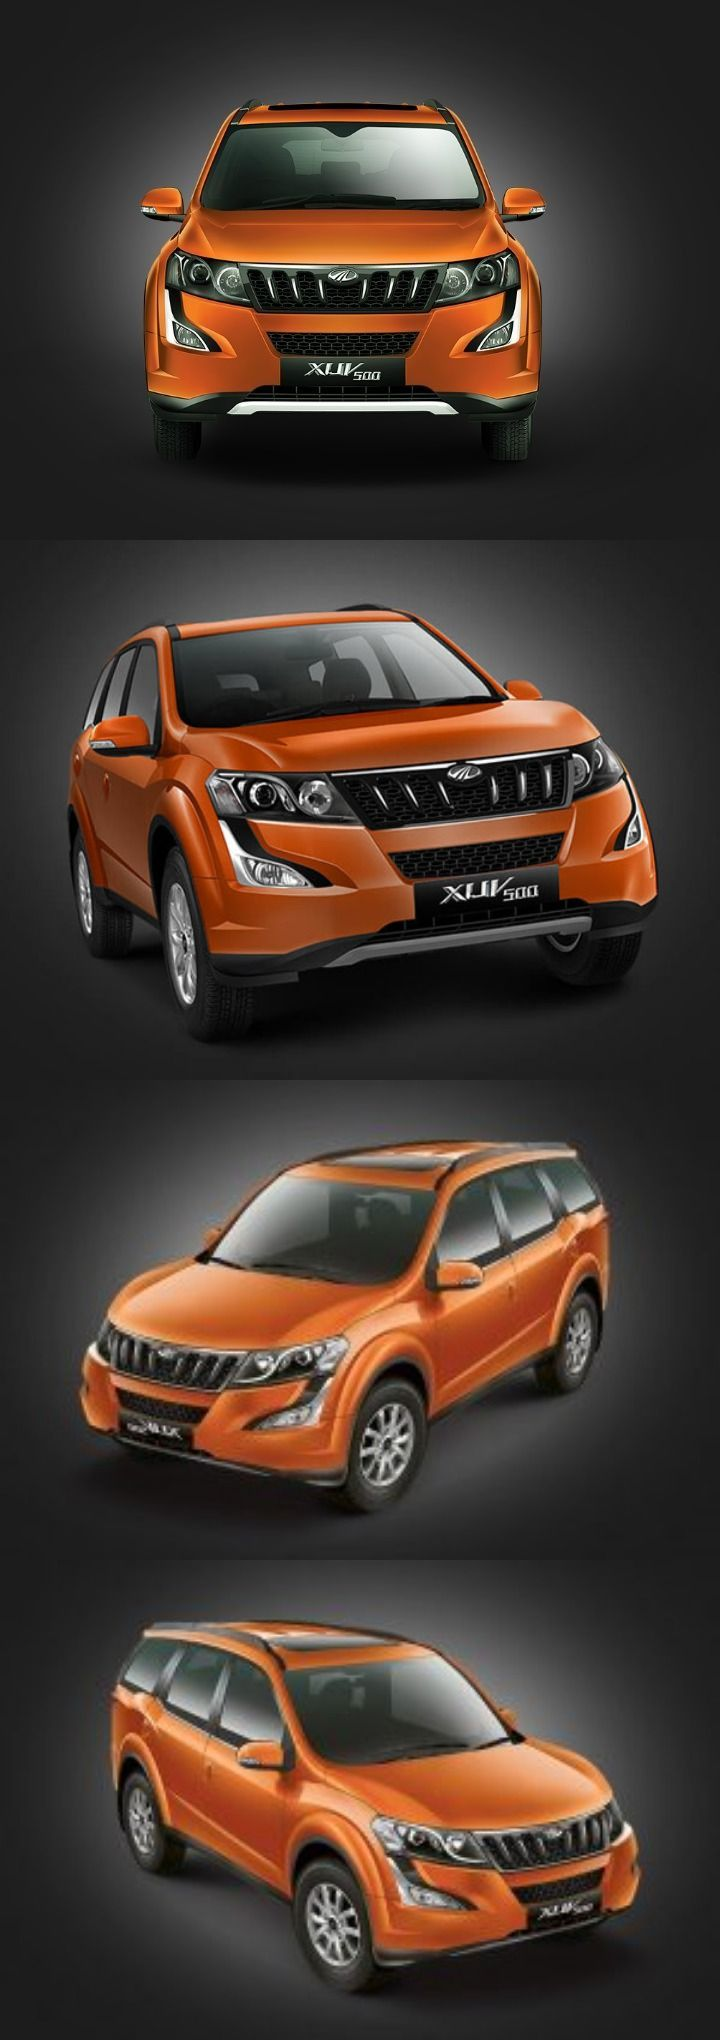 Mahindra XUV500 Petrol Launched In India At Rs 15.49 lakh